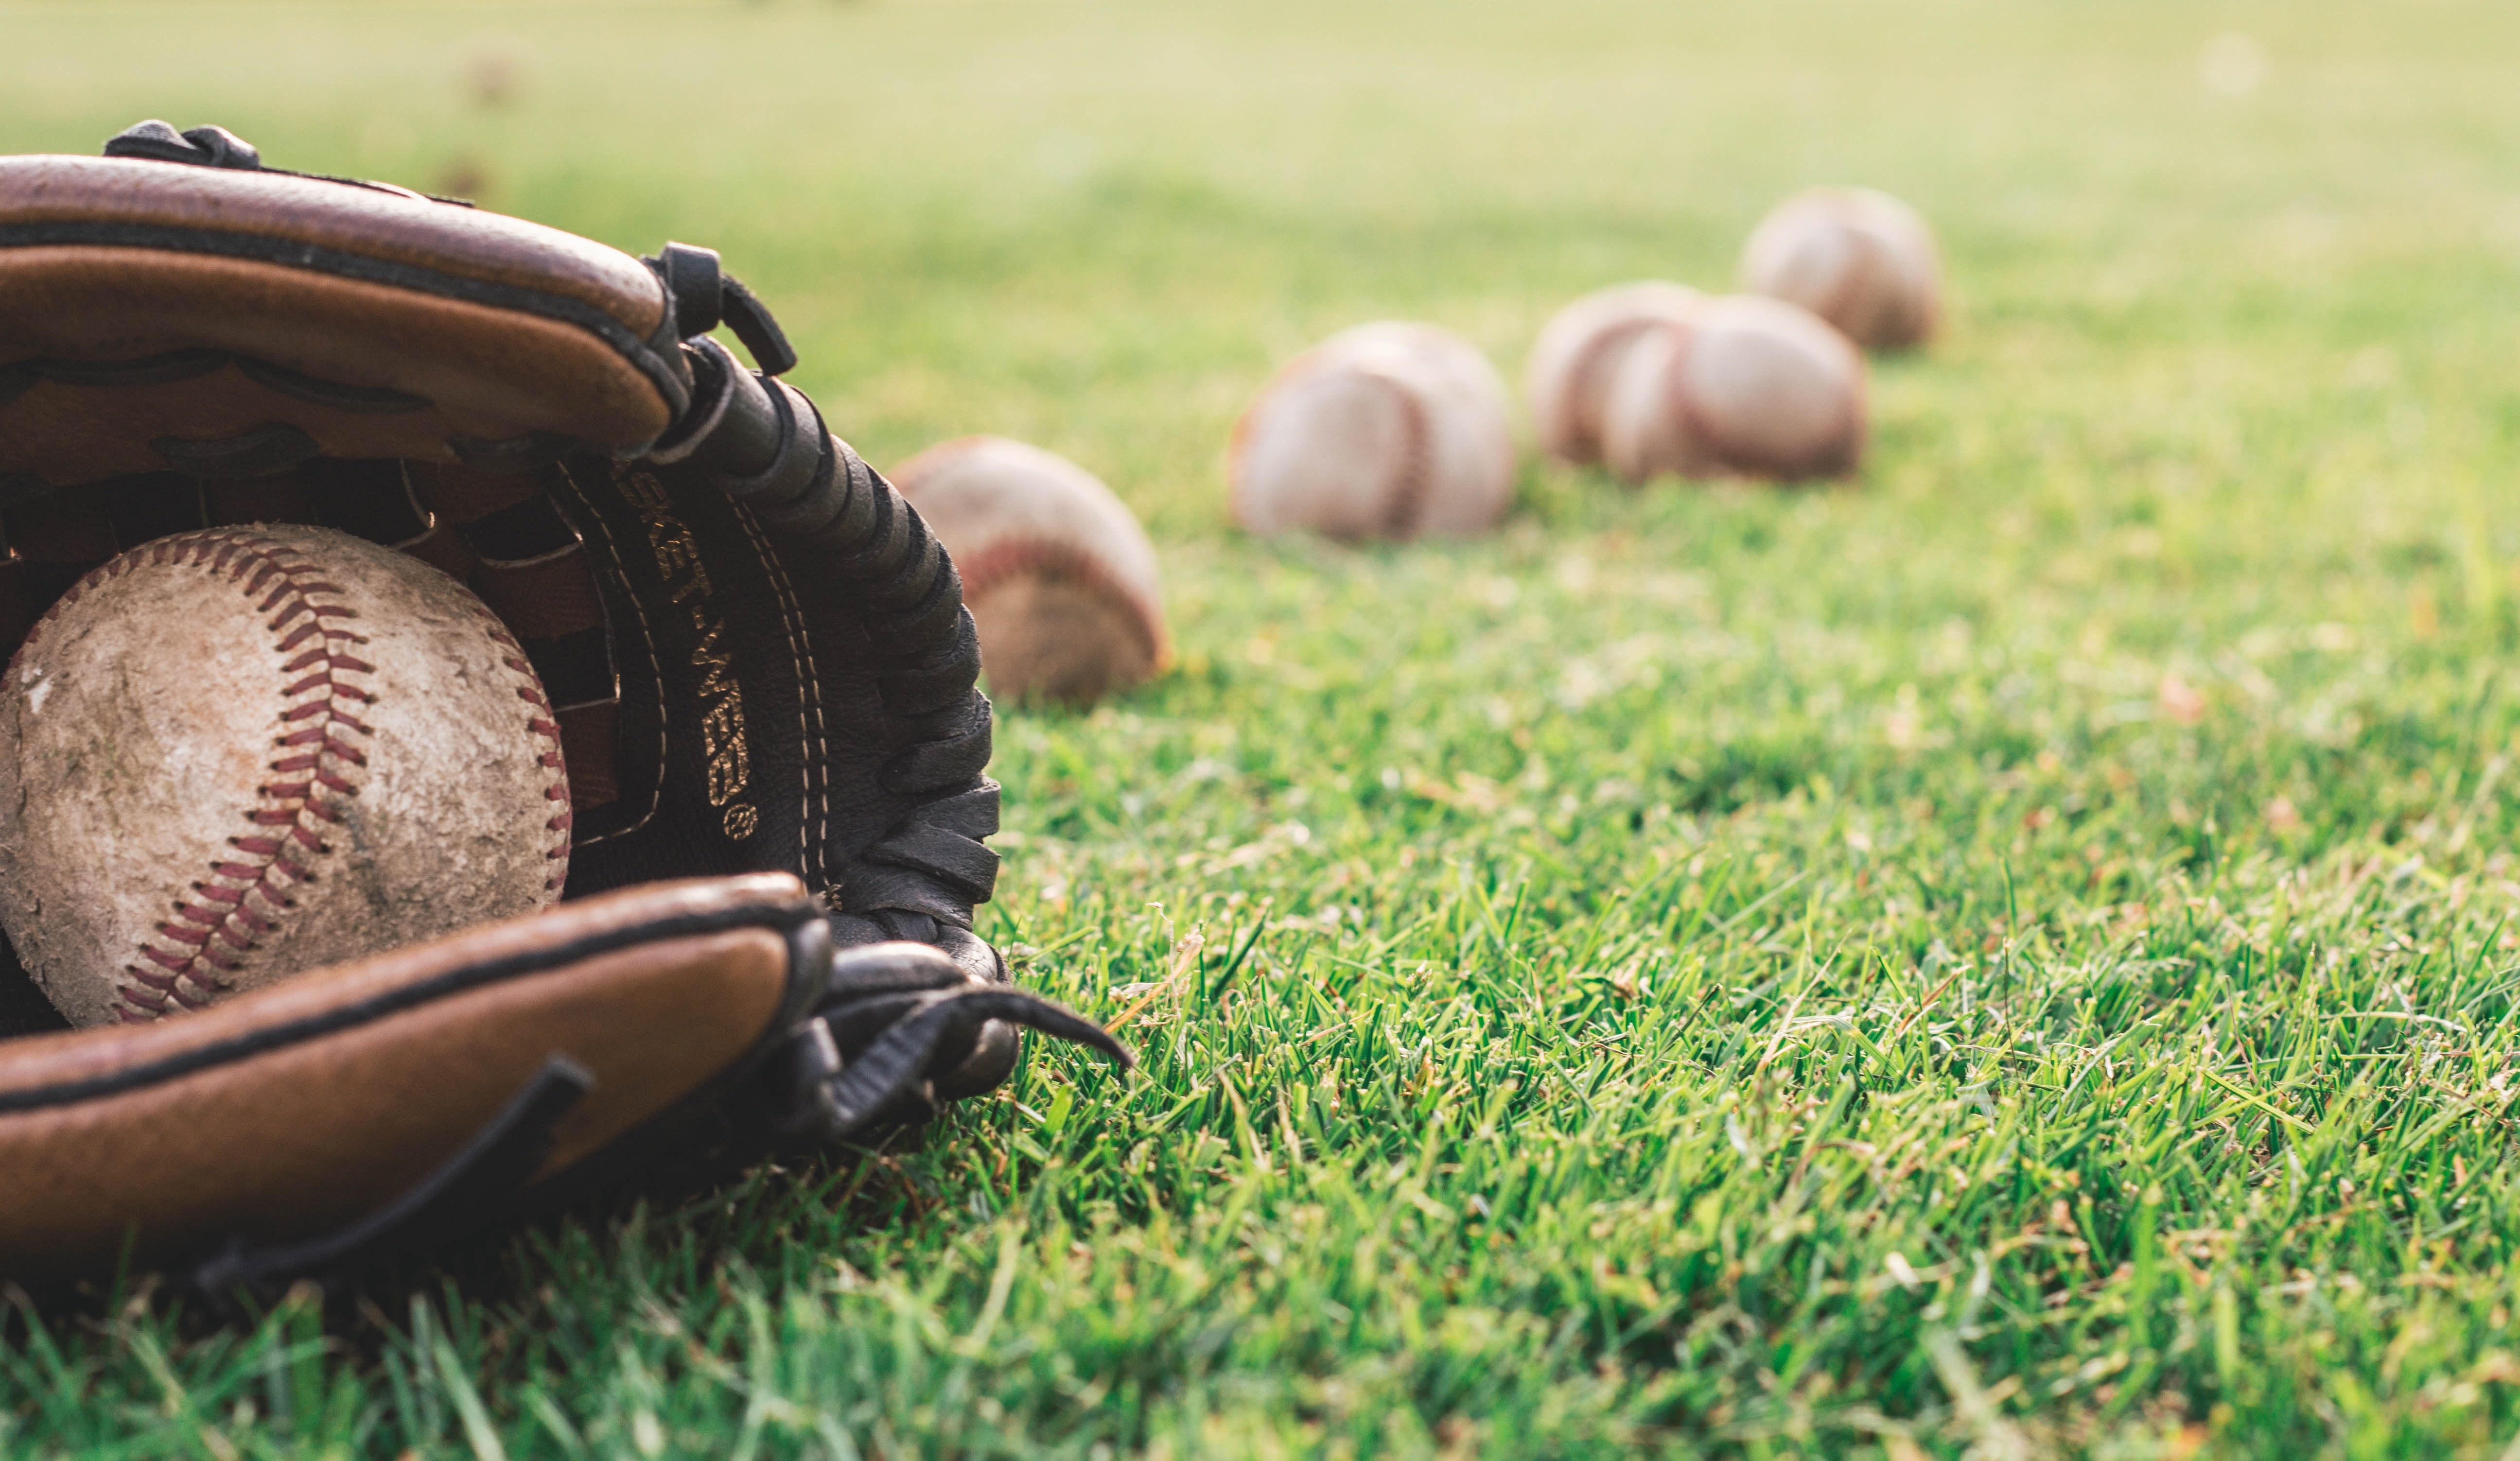 Take Me Home For the Ball Game: Baseball in 2020